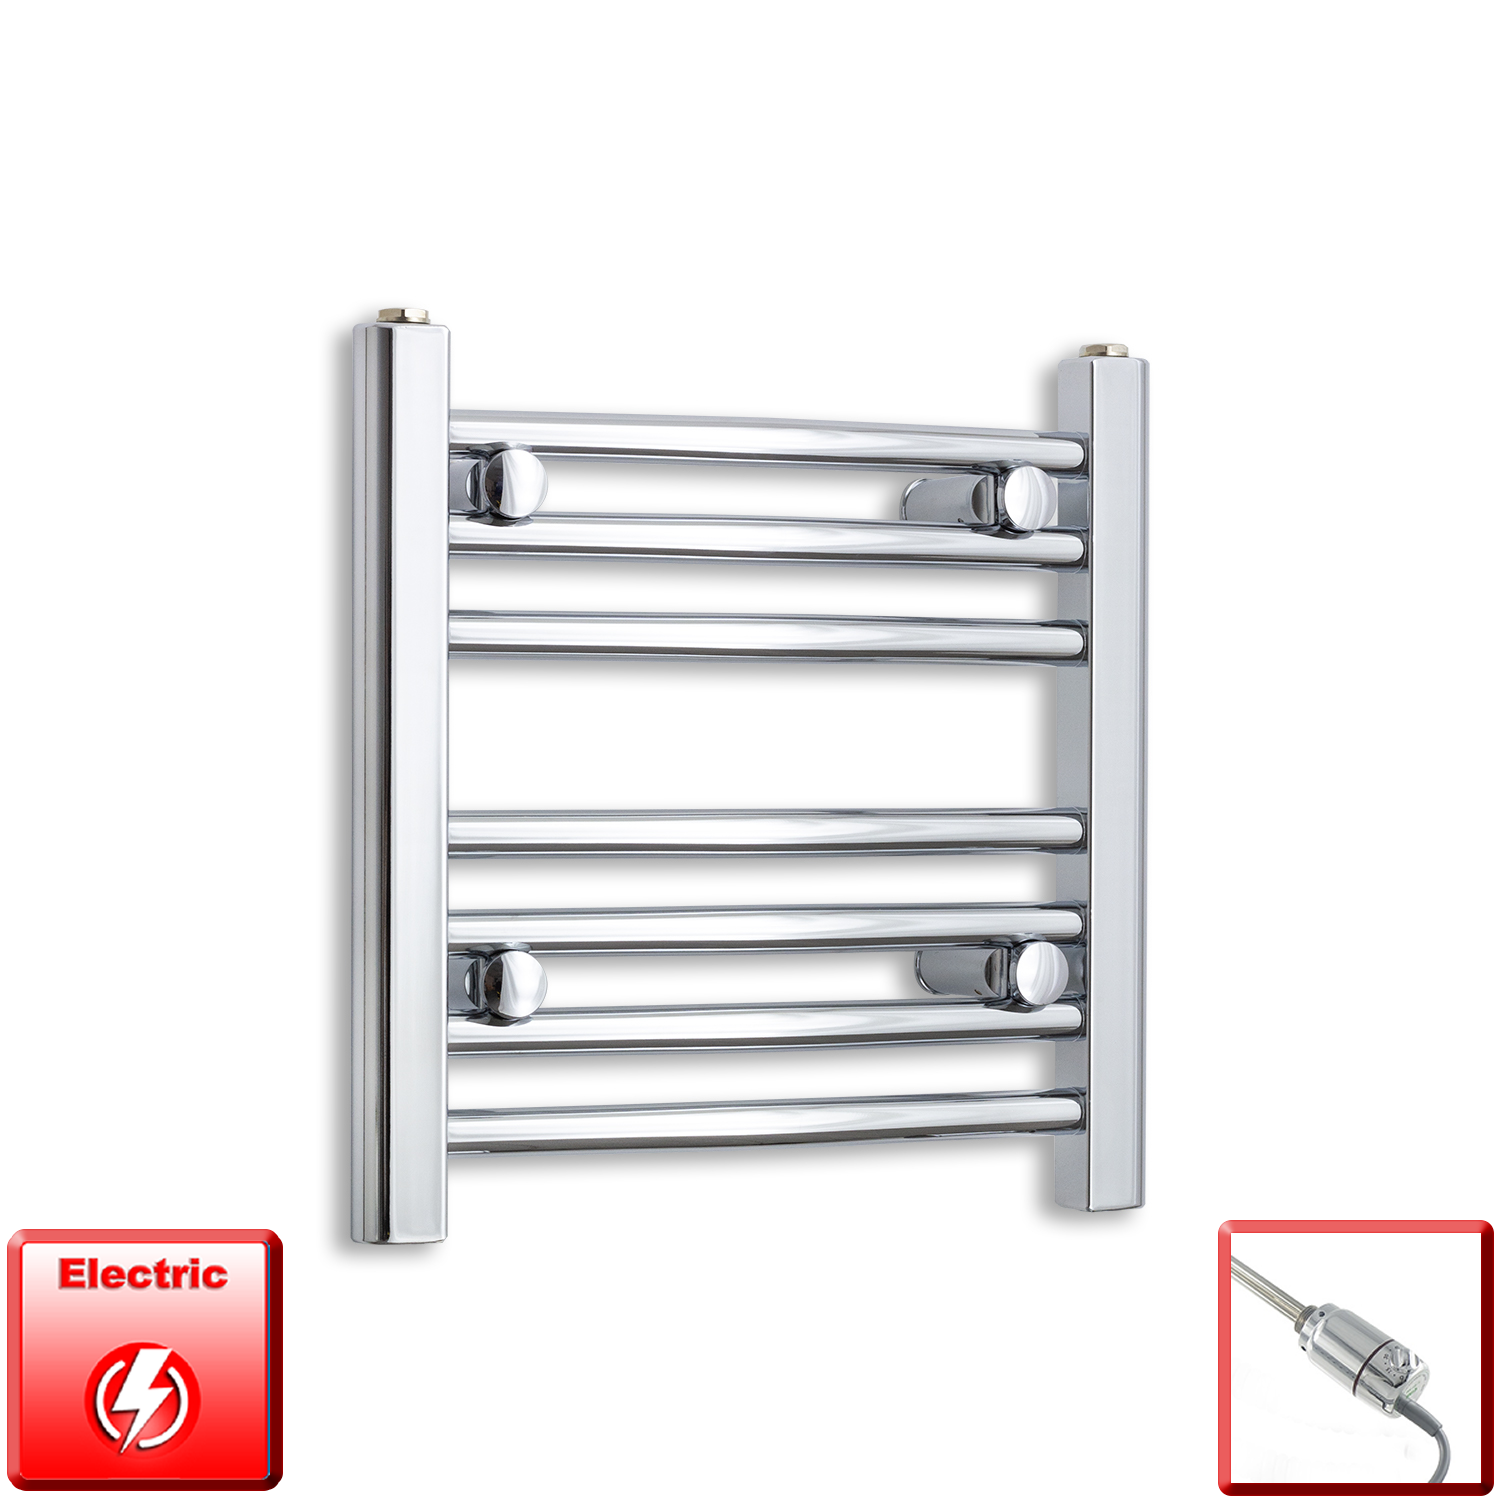 400mm Wide 400mm High Pre-Filled Chrome Electric Towel Rail Radiator With Thermostatic GT Element